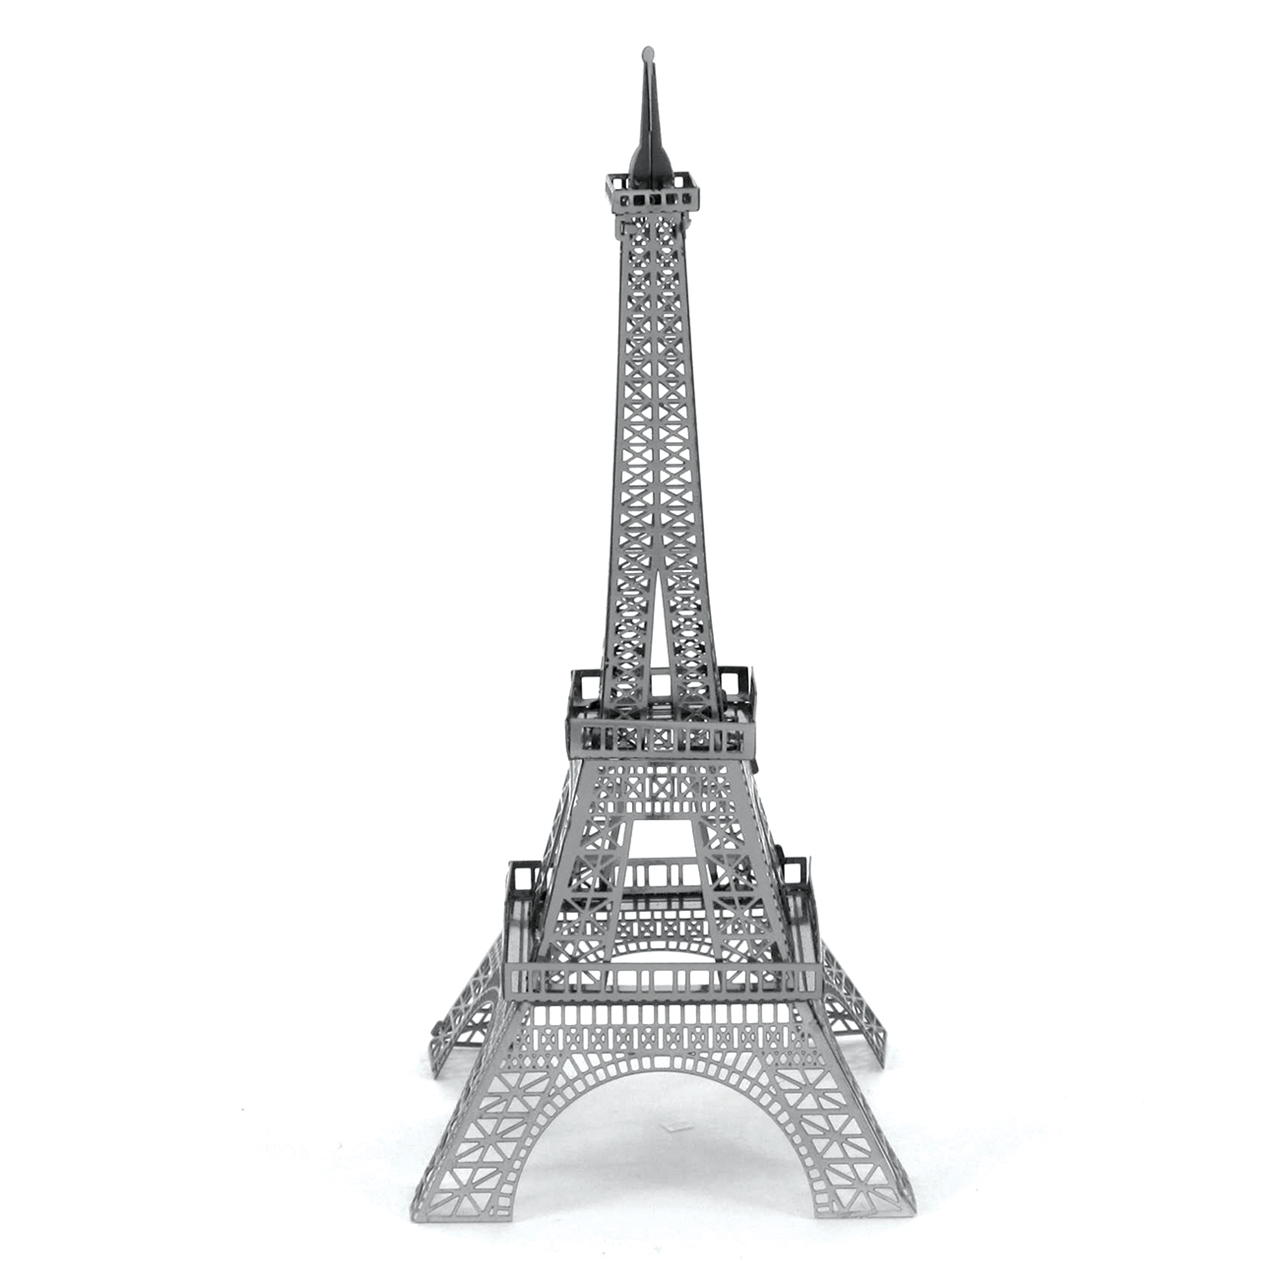 tower hobbies sale with Metal Earth Eiffel Tower 3d Laser Cut Models on Product furthermore Product moreover Product likewise Endwood Castle The Siege Tower Siege Weapon in addition The Metro Forest Project Opens In Bangkok.